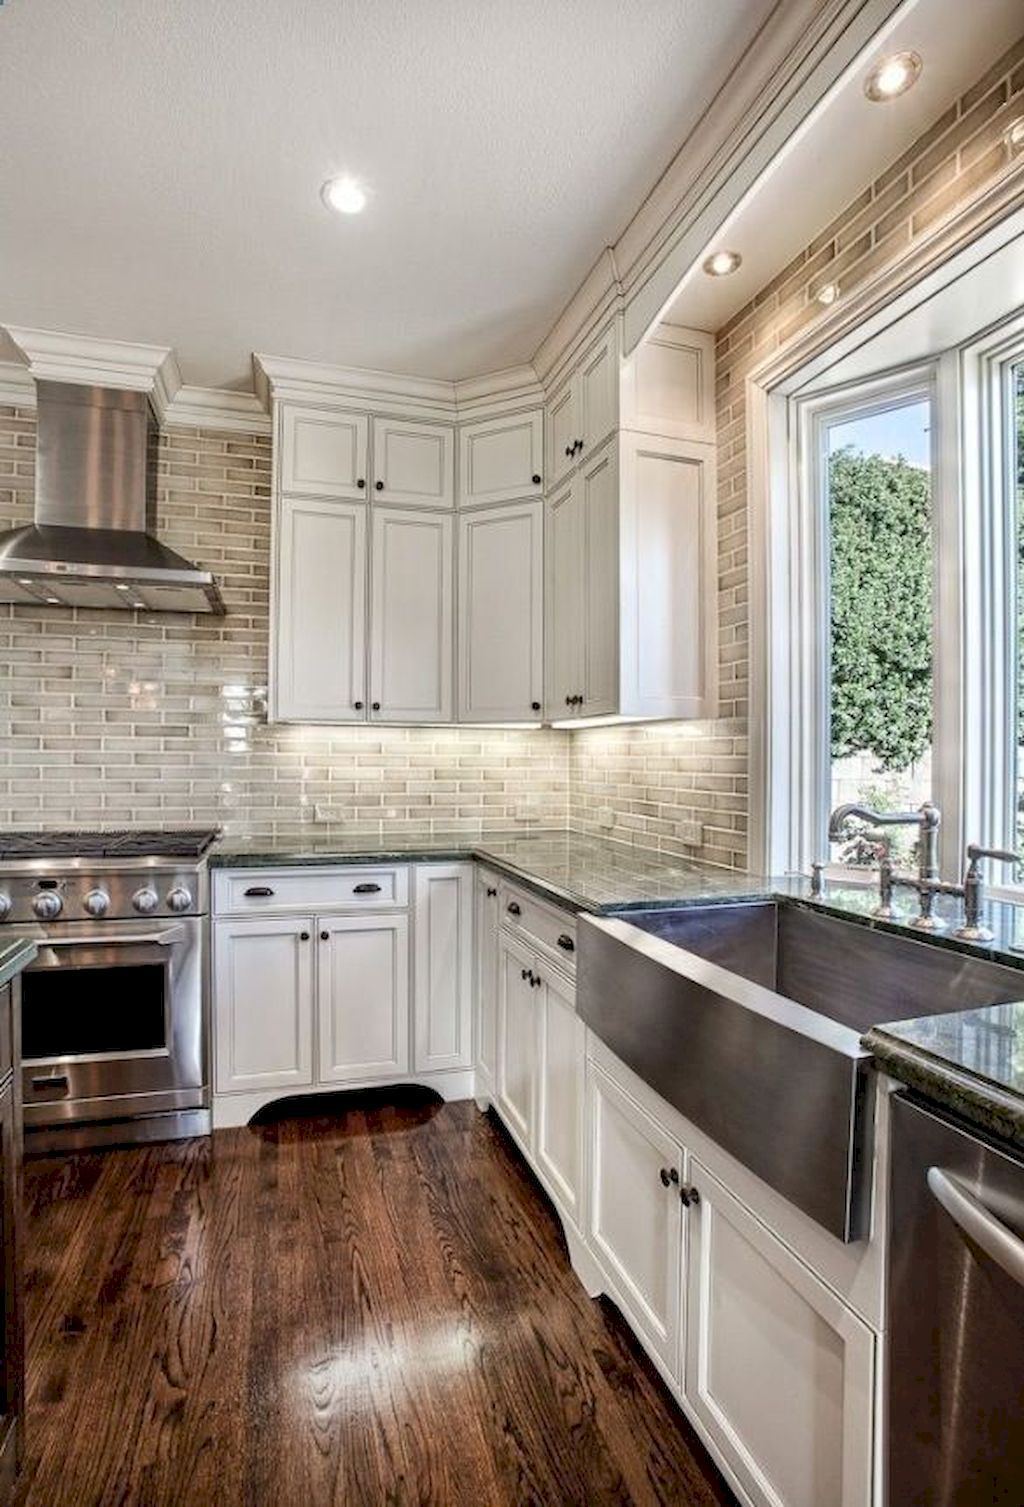 Best Rustic Farmhouse Kitchen Cabinets in List (85 ...